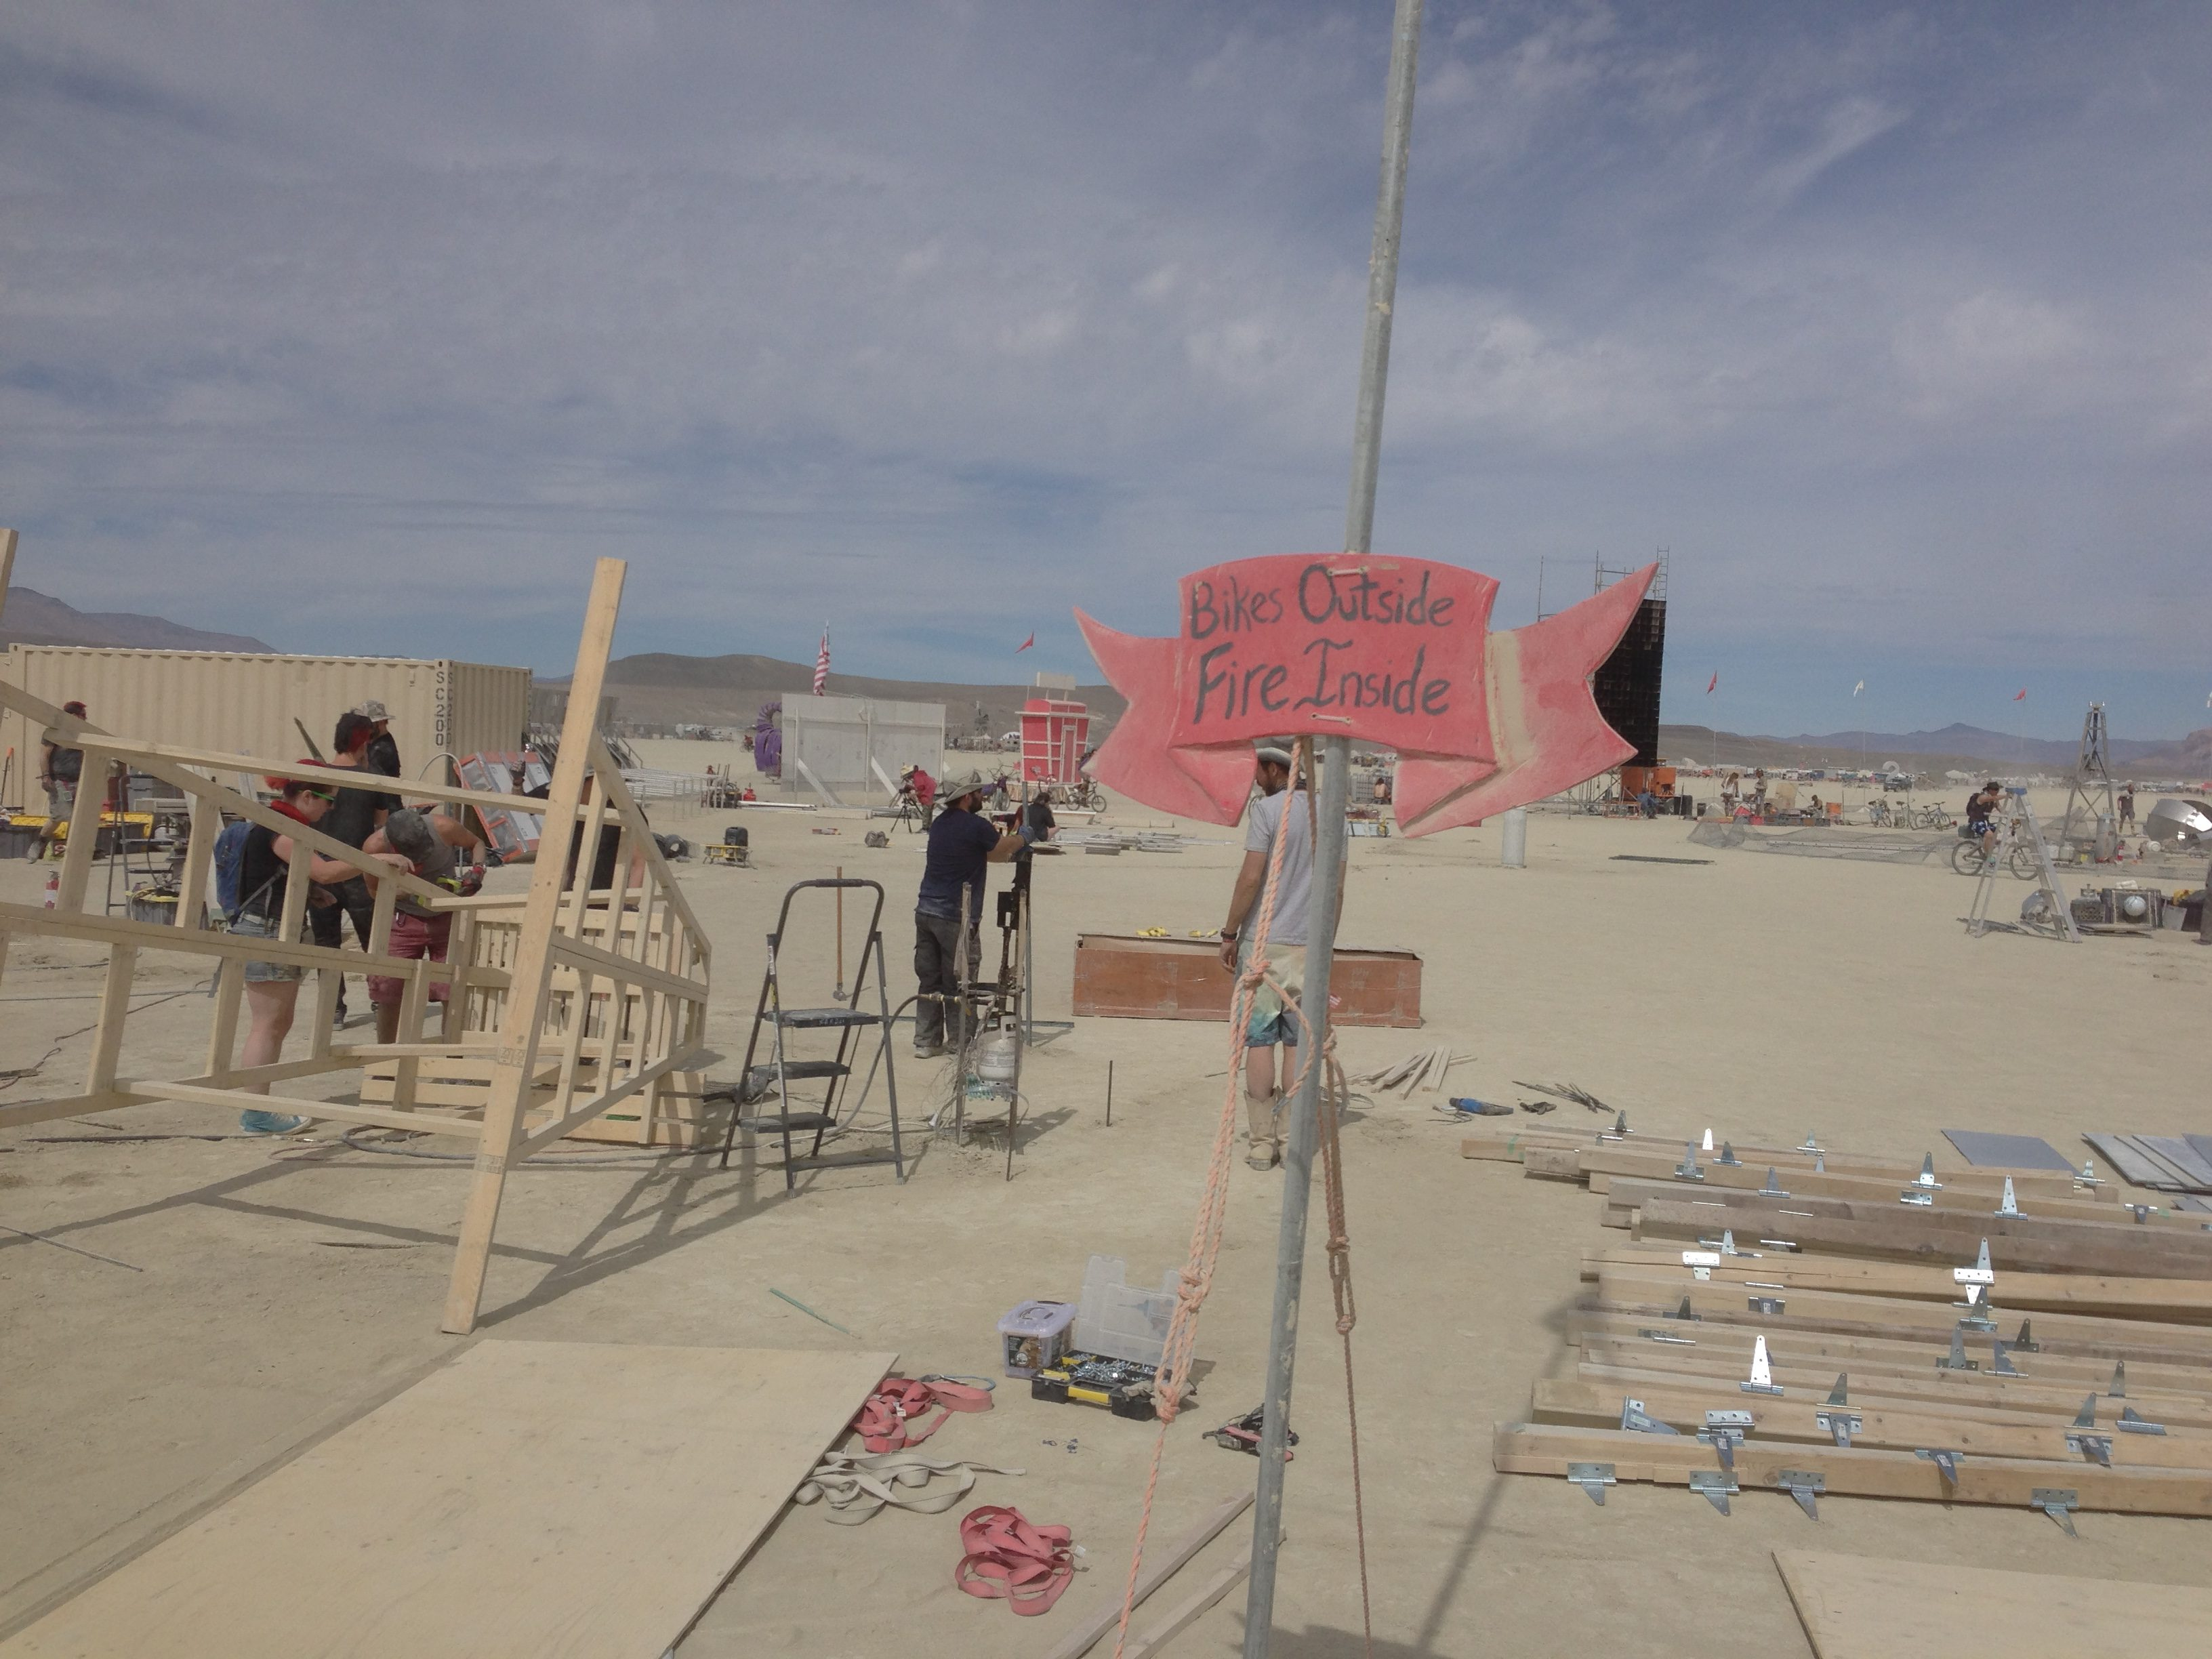 l-r: Lifeguard Stand, Stepstool, Flamey, Quartz Tube, Charnival Sign, Mirror Posts.